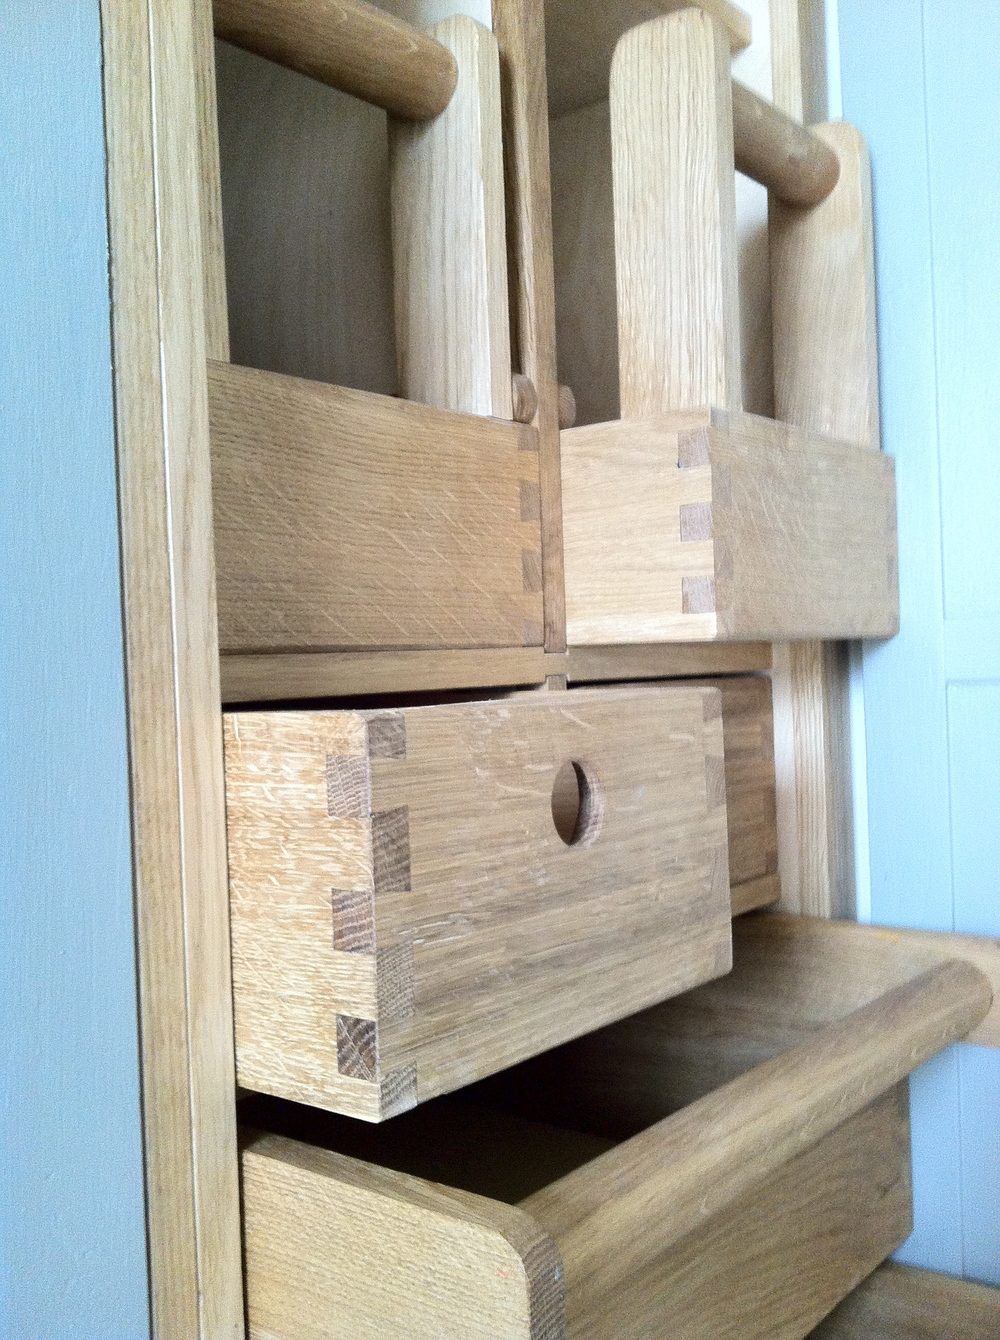 Dovetailed oak drawers